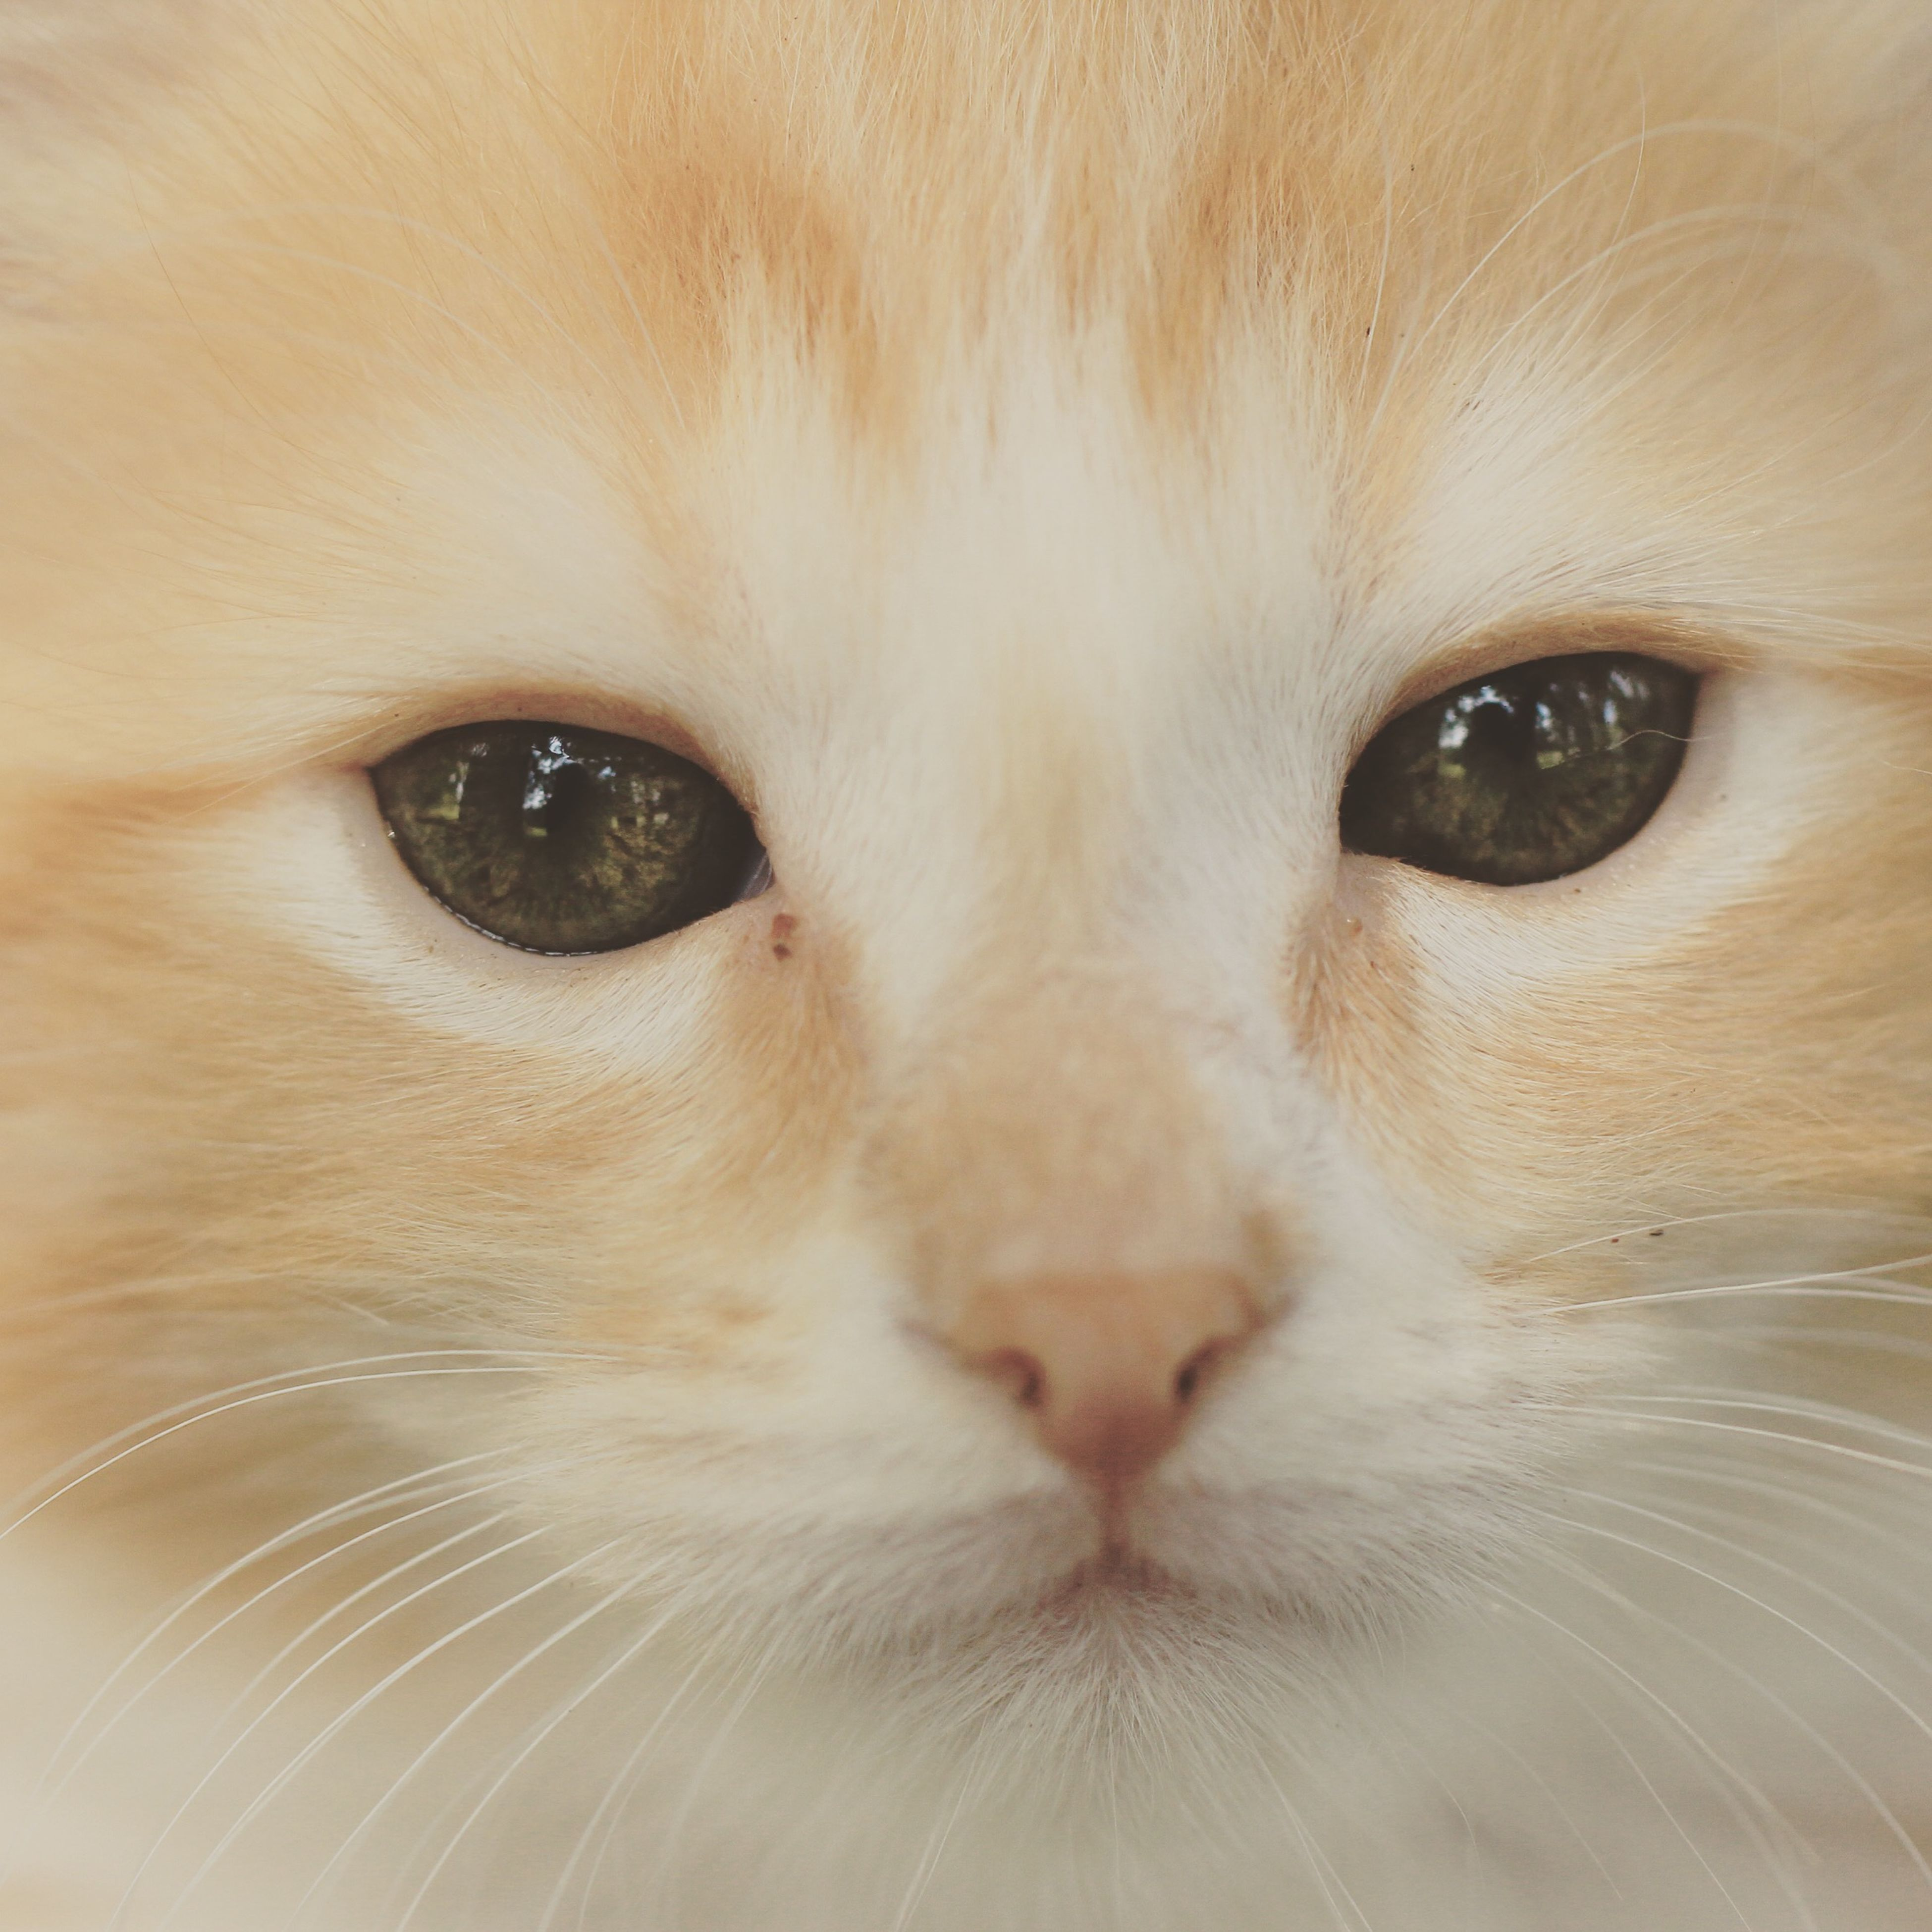 one animal, animal themes, pets, domestic animals, close-up, domestic cat, full frame, animal eye, cat, looking at camera, portrait, backgrounds, animal head, mammal, animal body part, part of, whisker, feline, extreme close-up, indoors